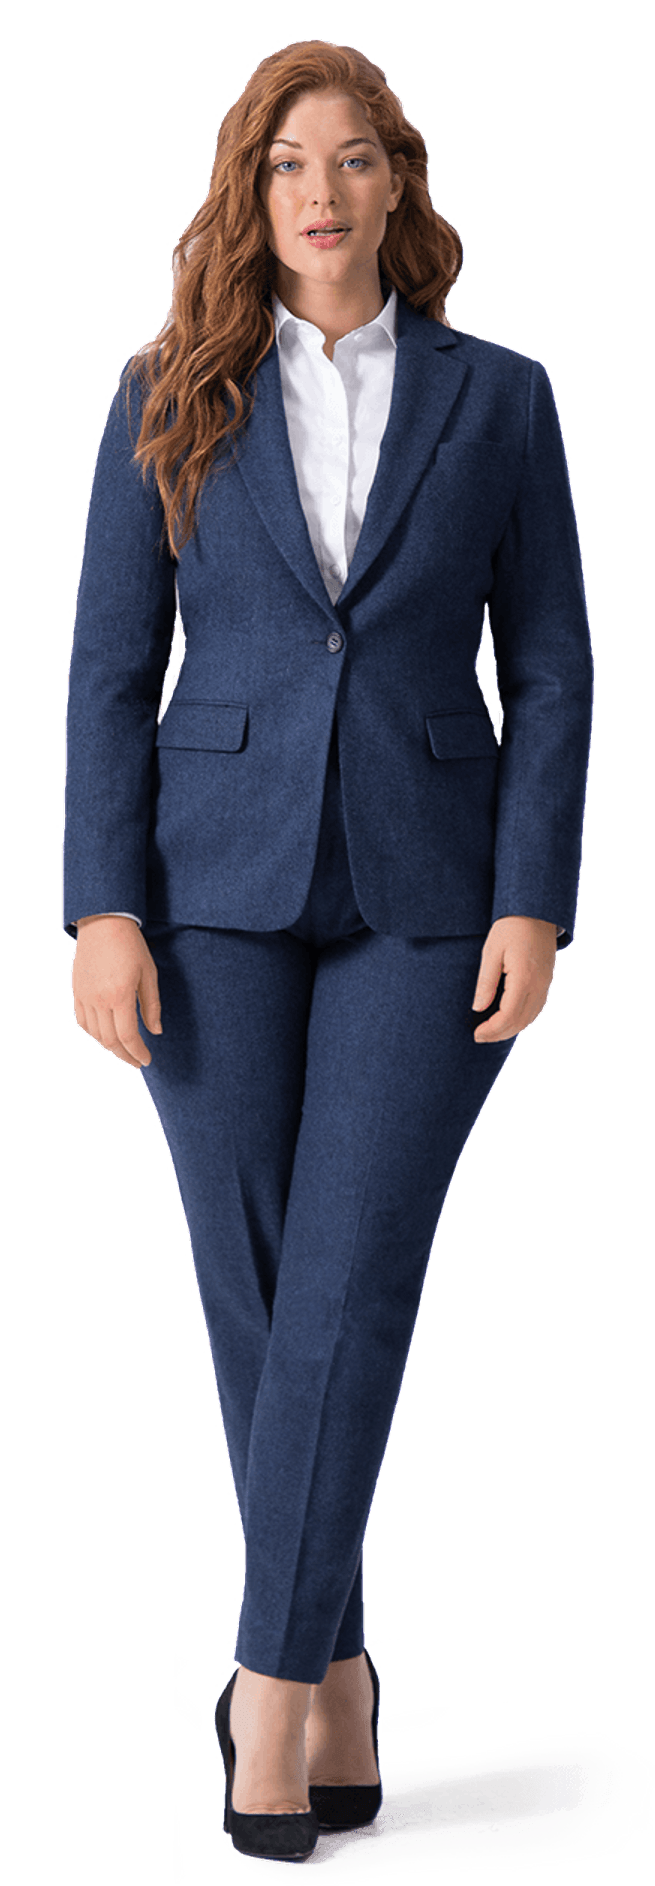 Make Your Own Suit : Women's, Suits, Measure, Sumissura